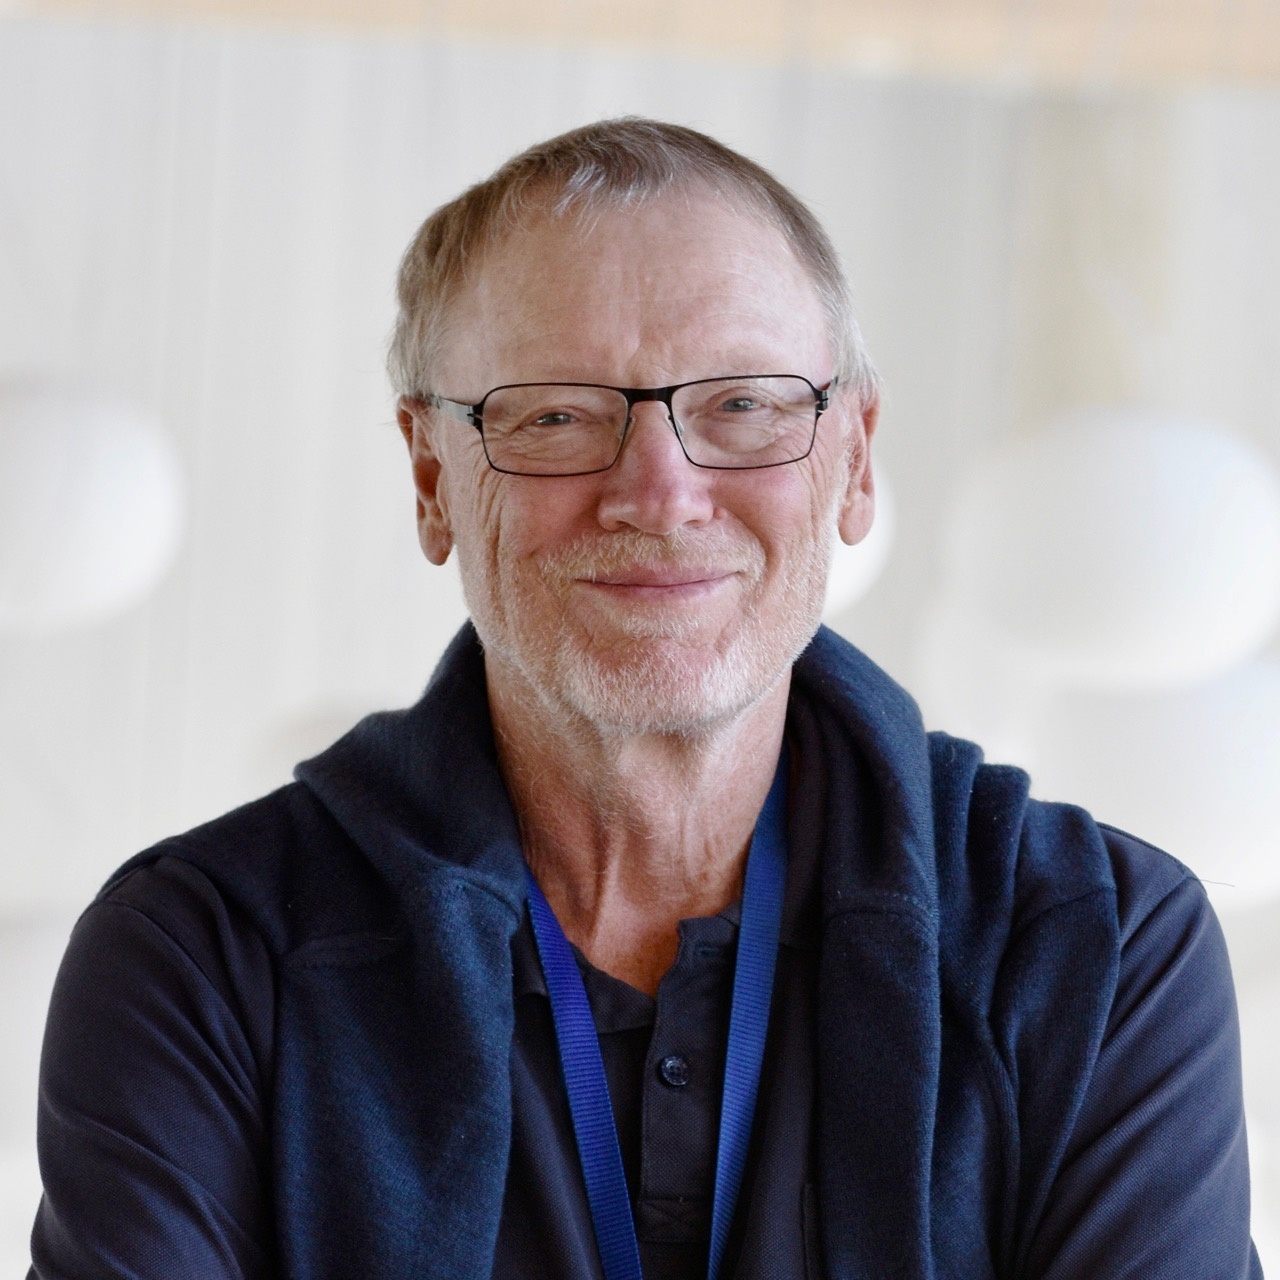 Jens Holst - Co-founderMedical doctor with 45 years of experience in gut hormone research and in vivo pharmacology.